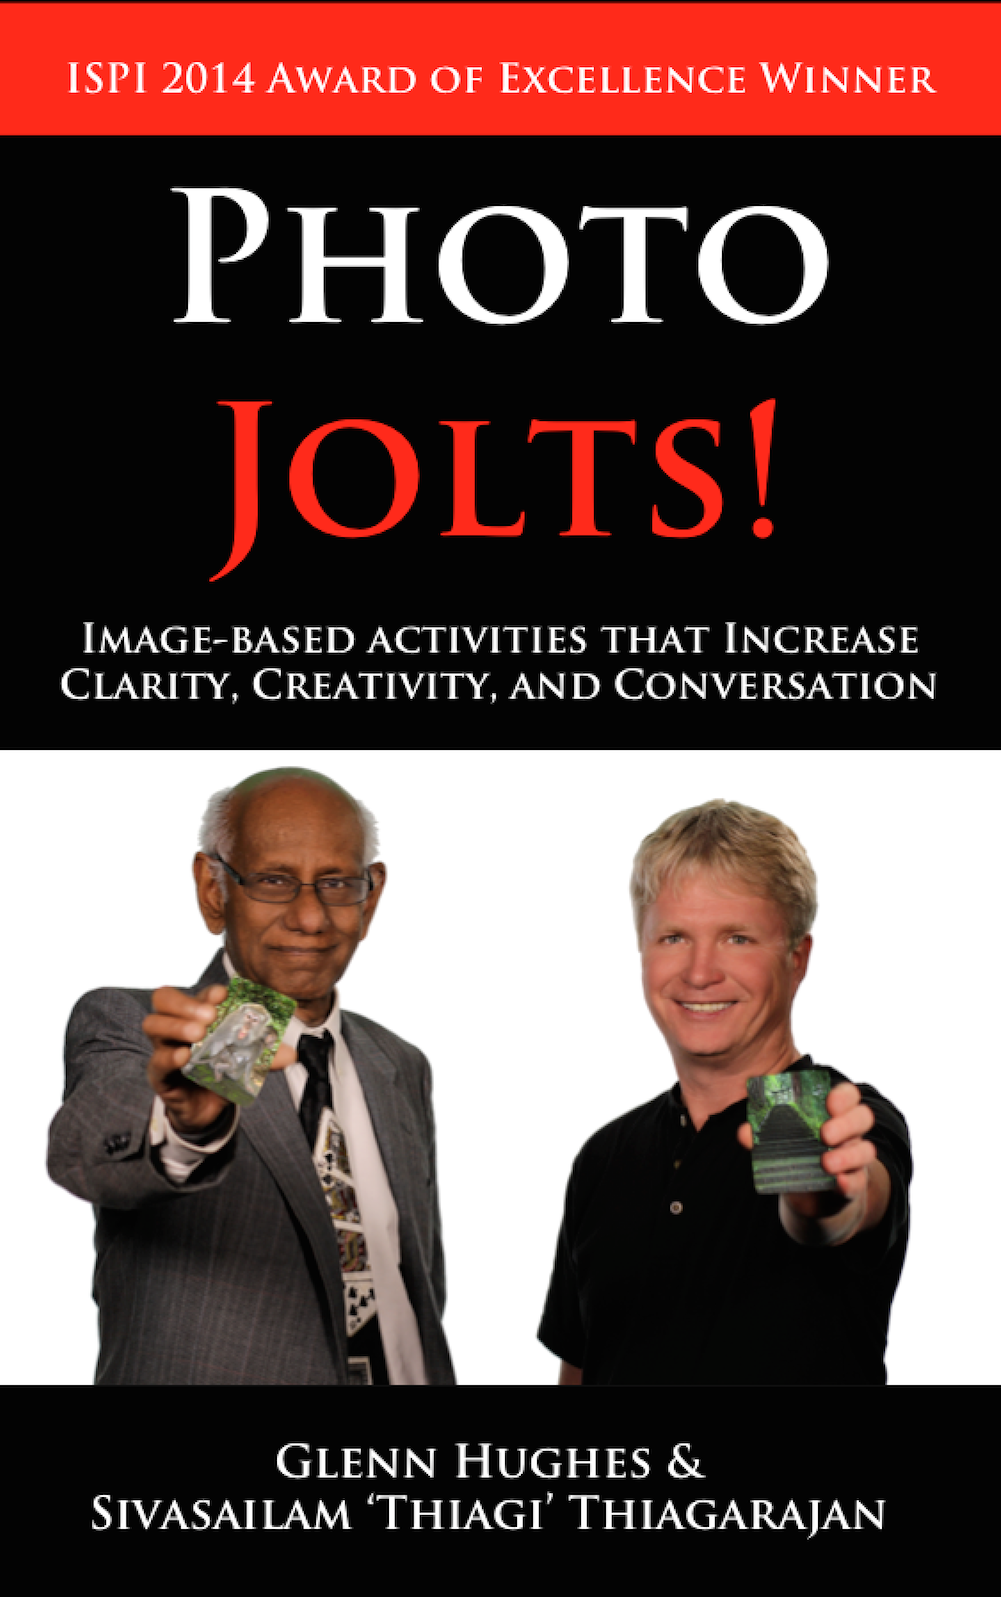 Photo Jolts! Award Winning eBook Cover